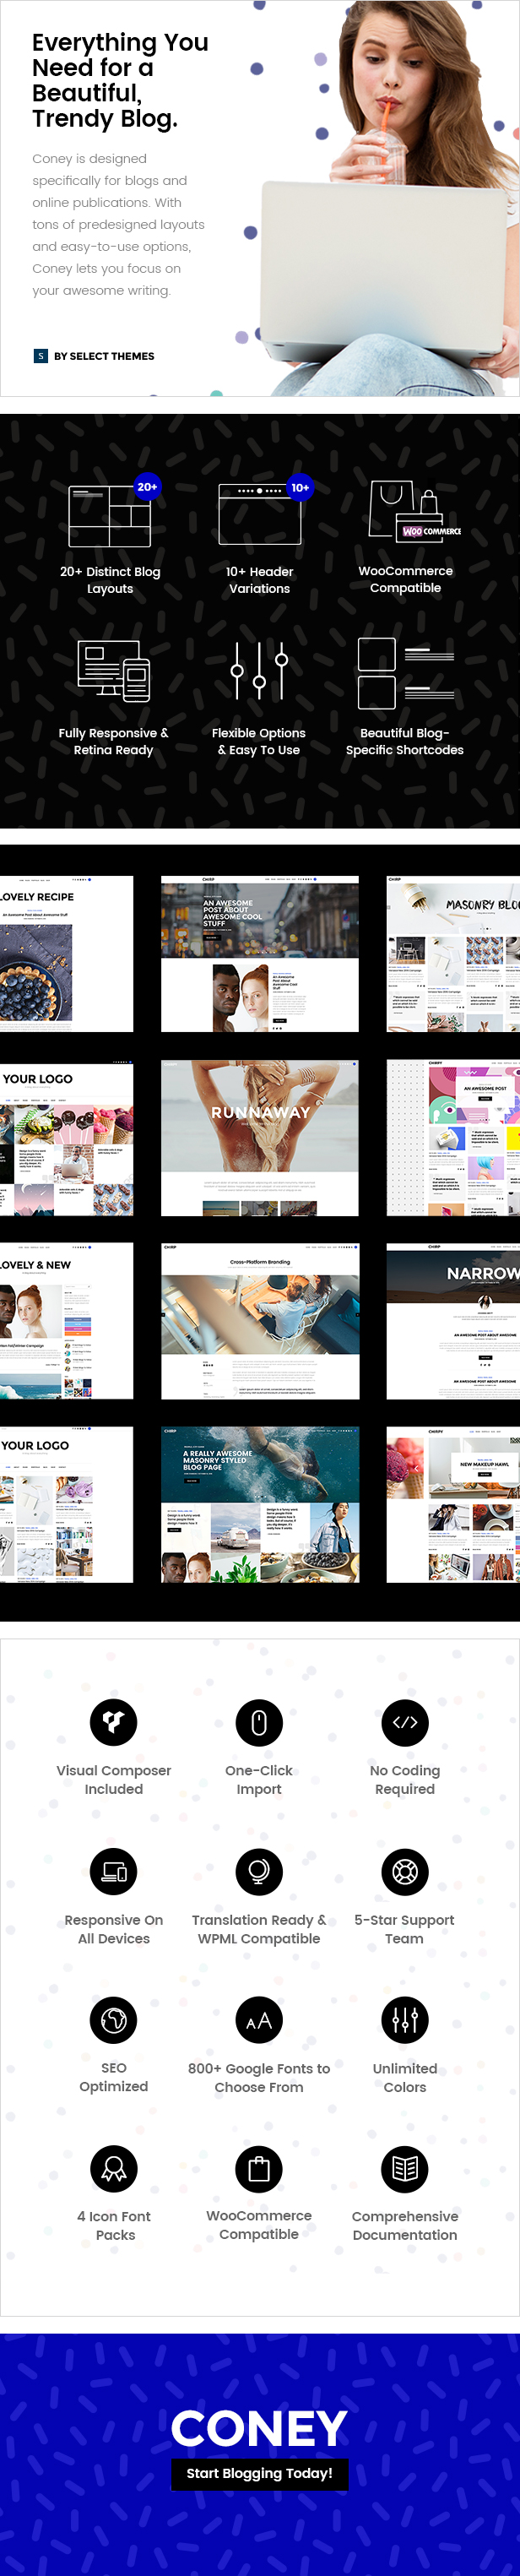 WordPress theme Coney - A Trendy Theme for Blogs and Magazines (Blog / Magazine)